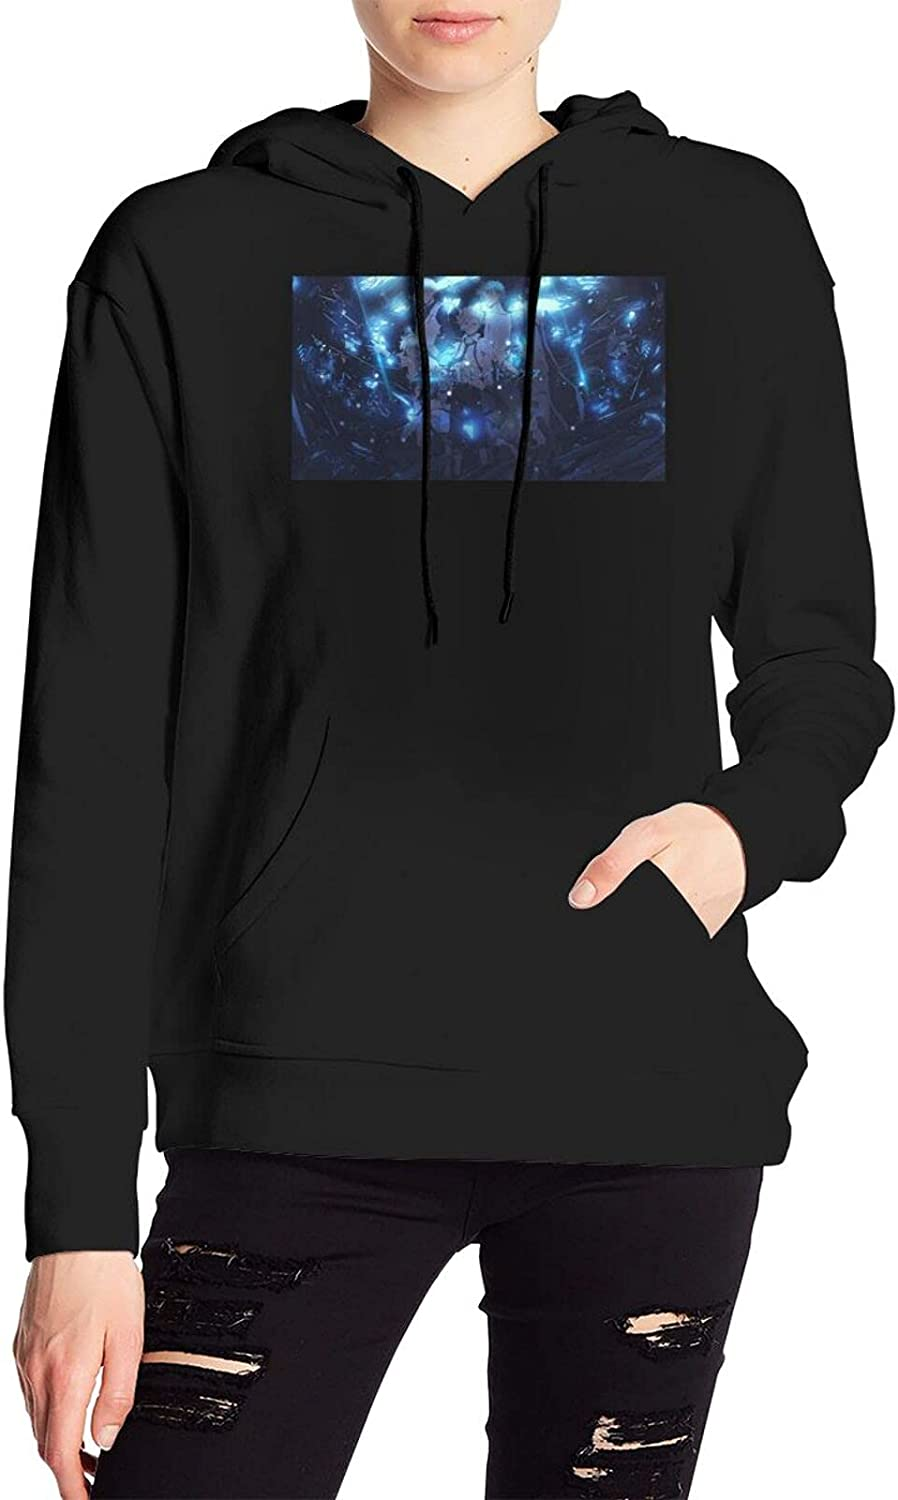 Bungo Stray Dogs Sweater Graphic Hoody With Pocket For Men Women